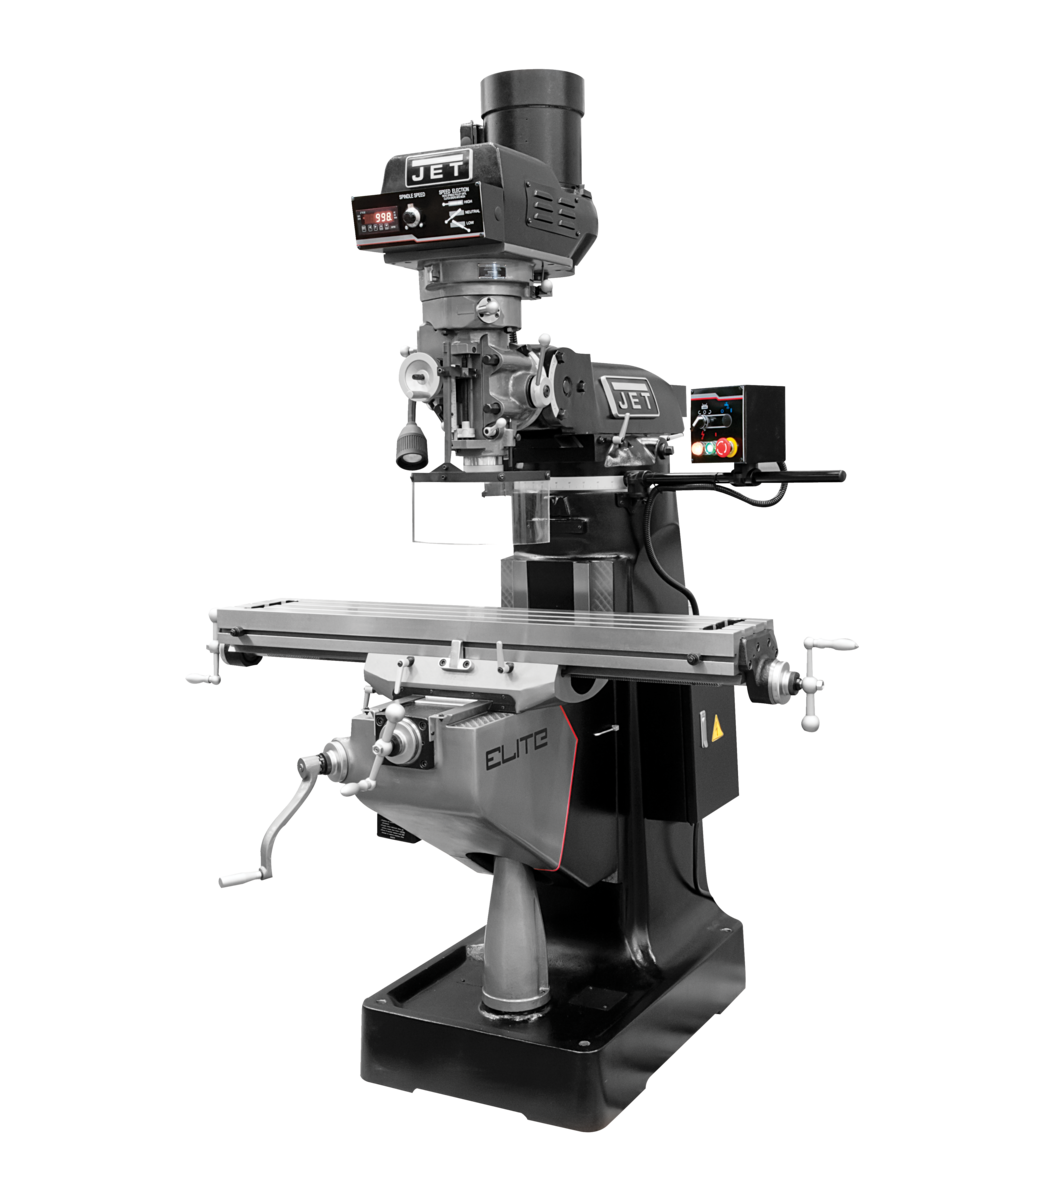 EVS-949 Mill with 2-Axis Newall DP700 DRO and Servo X, Y, Z-Axis Powerfeeds and USA Air Powered Draw Bar